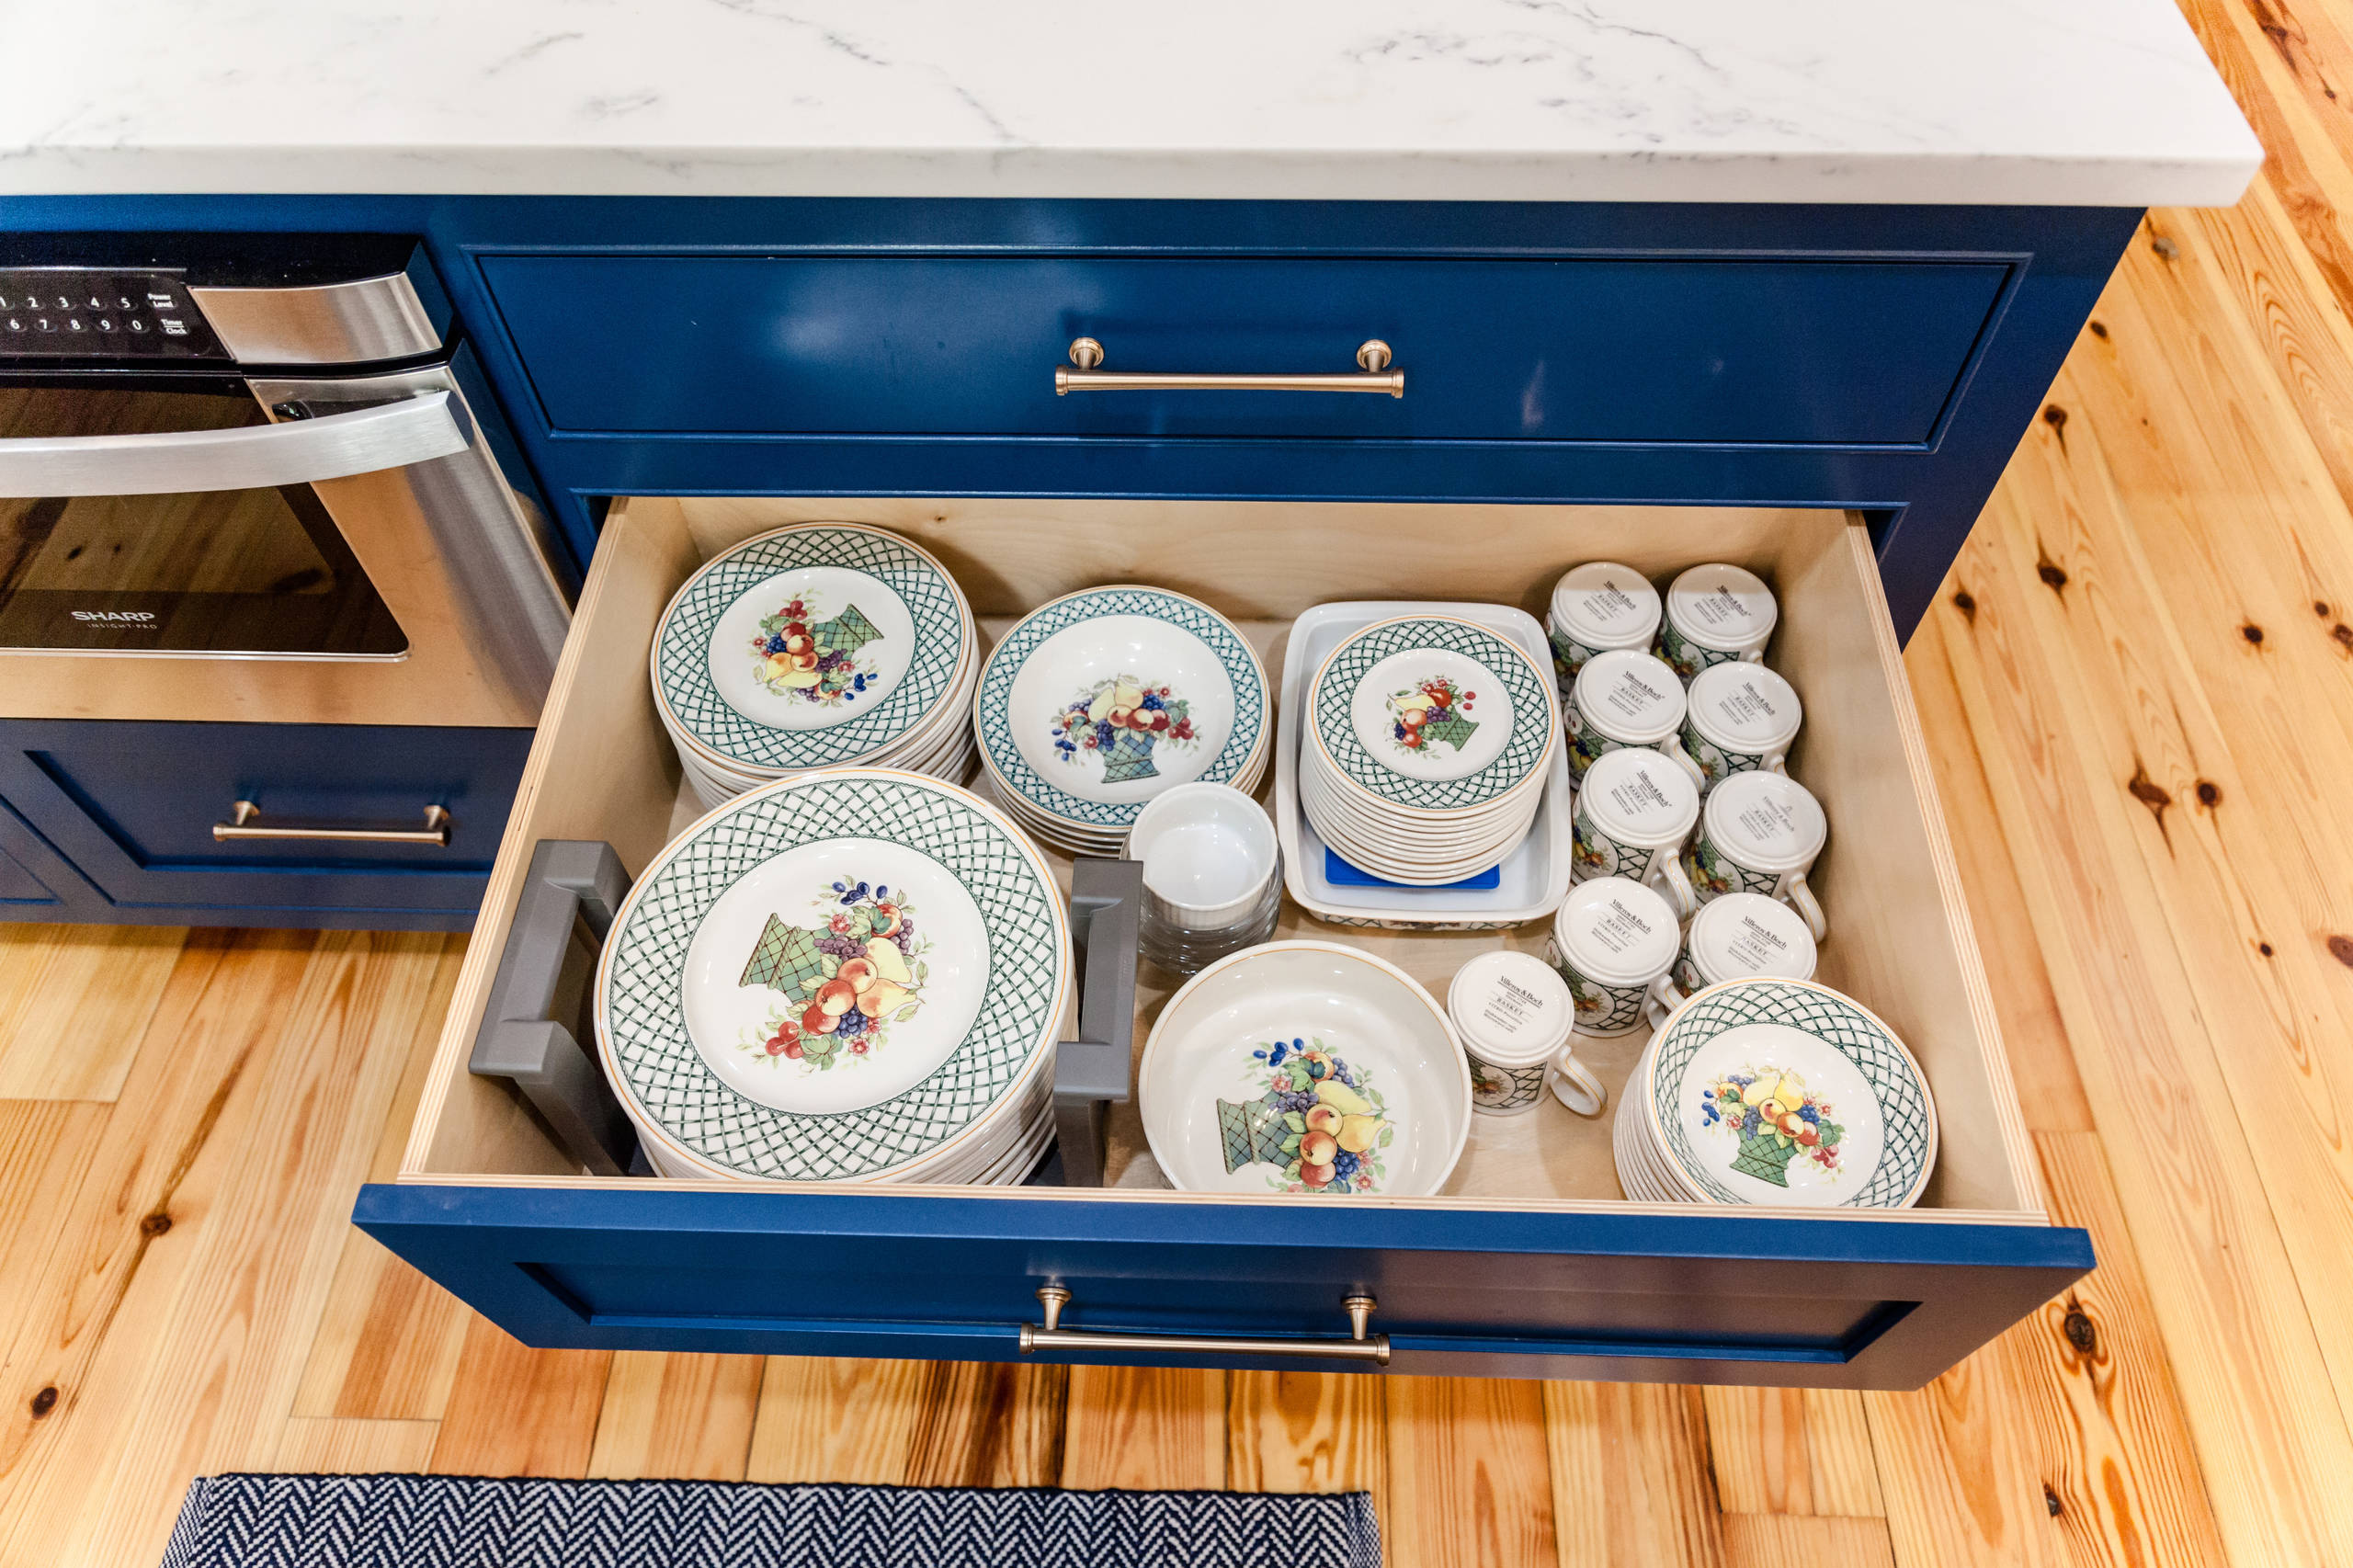 Full extension heavy duty drawers for everyday dishes